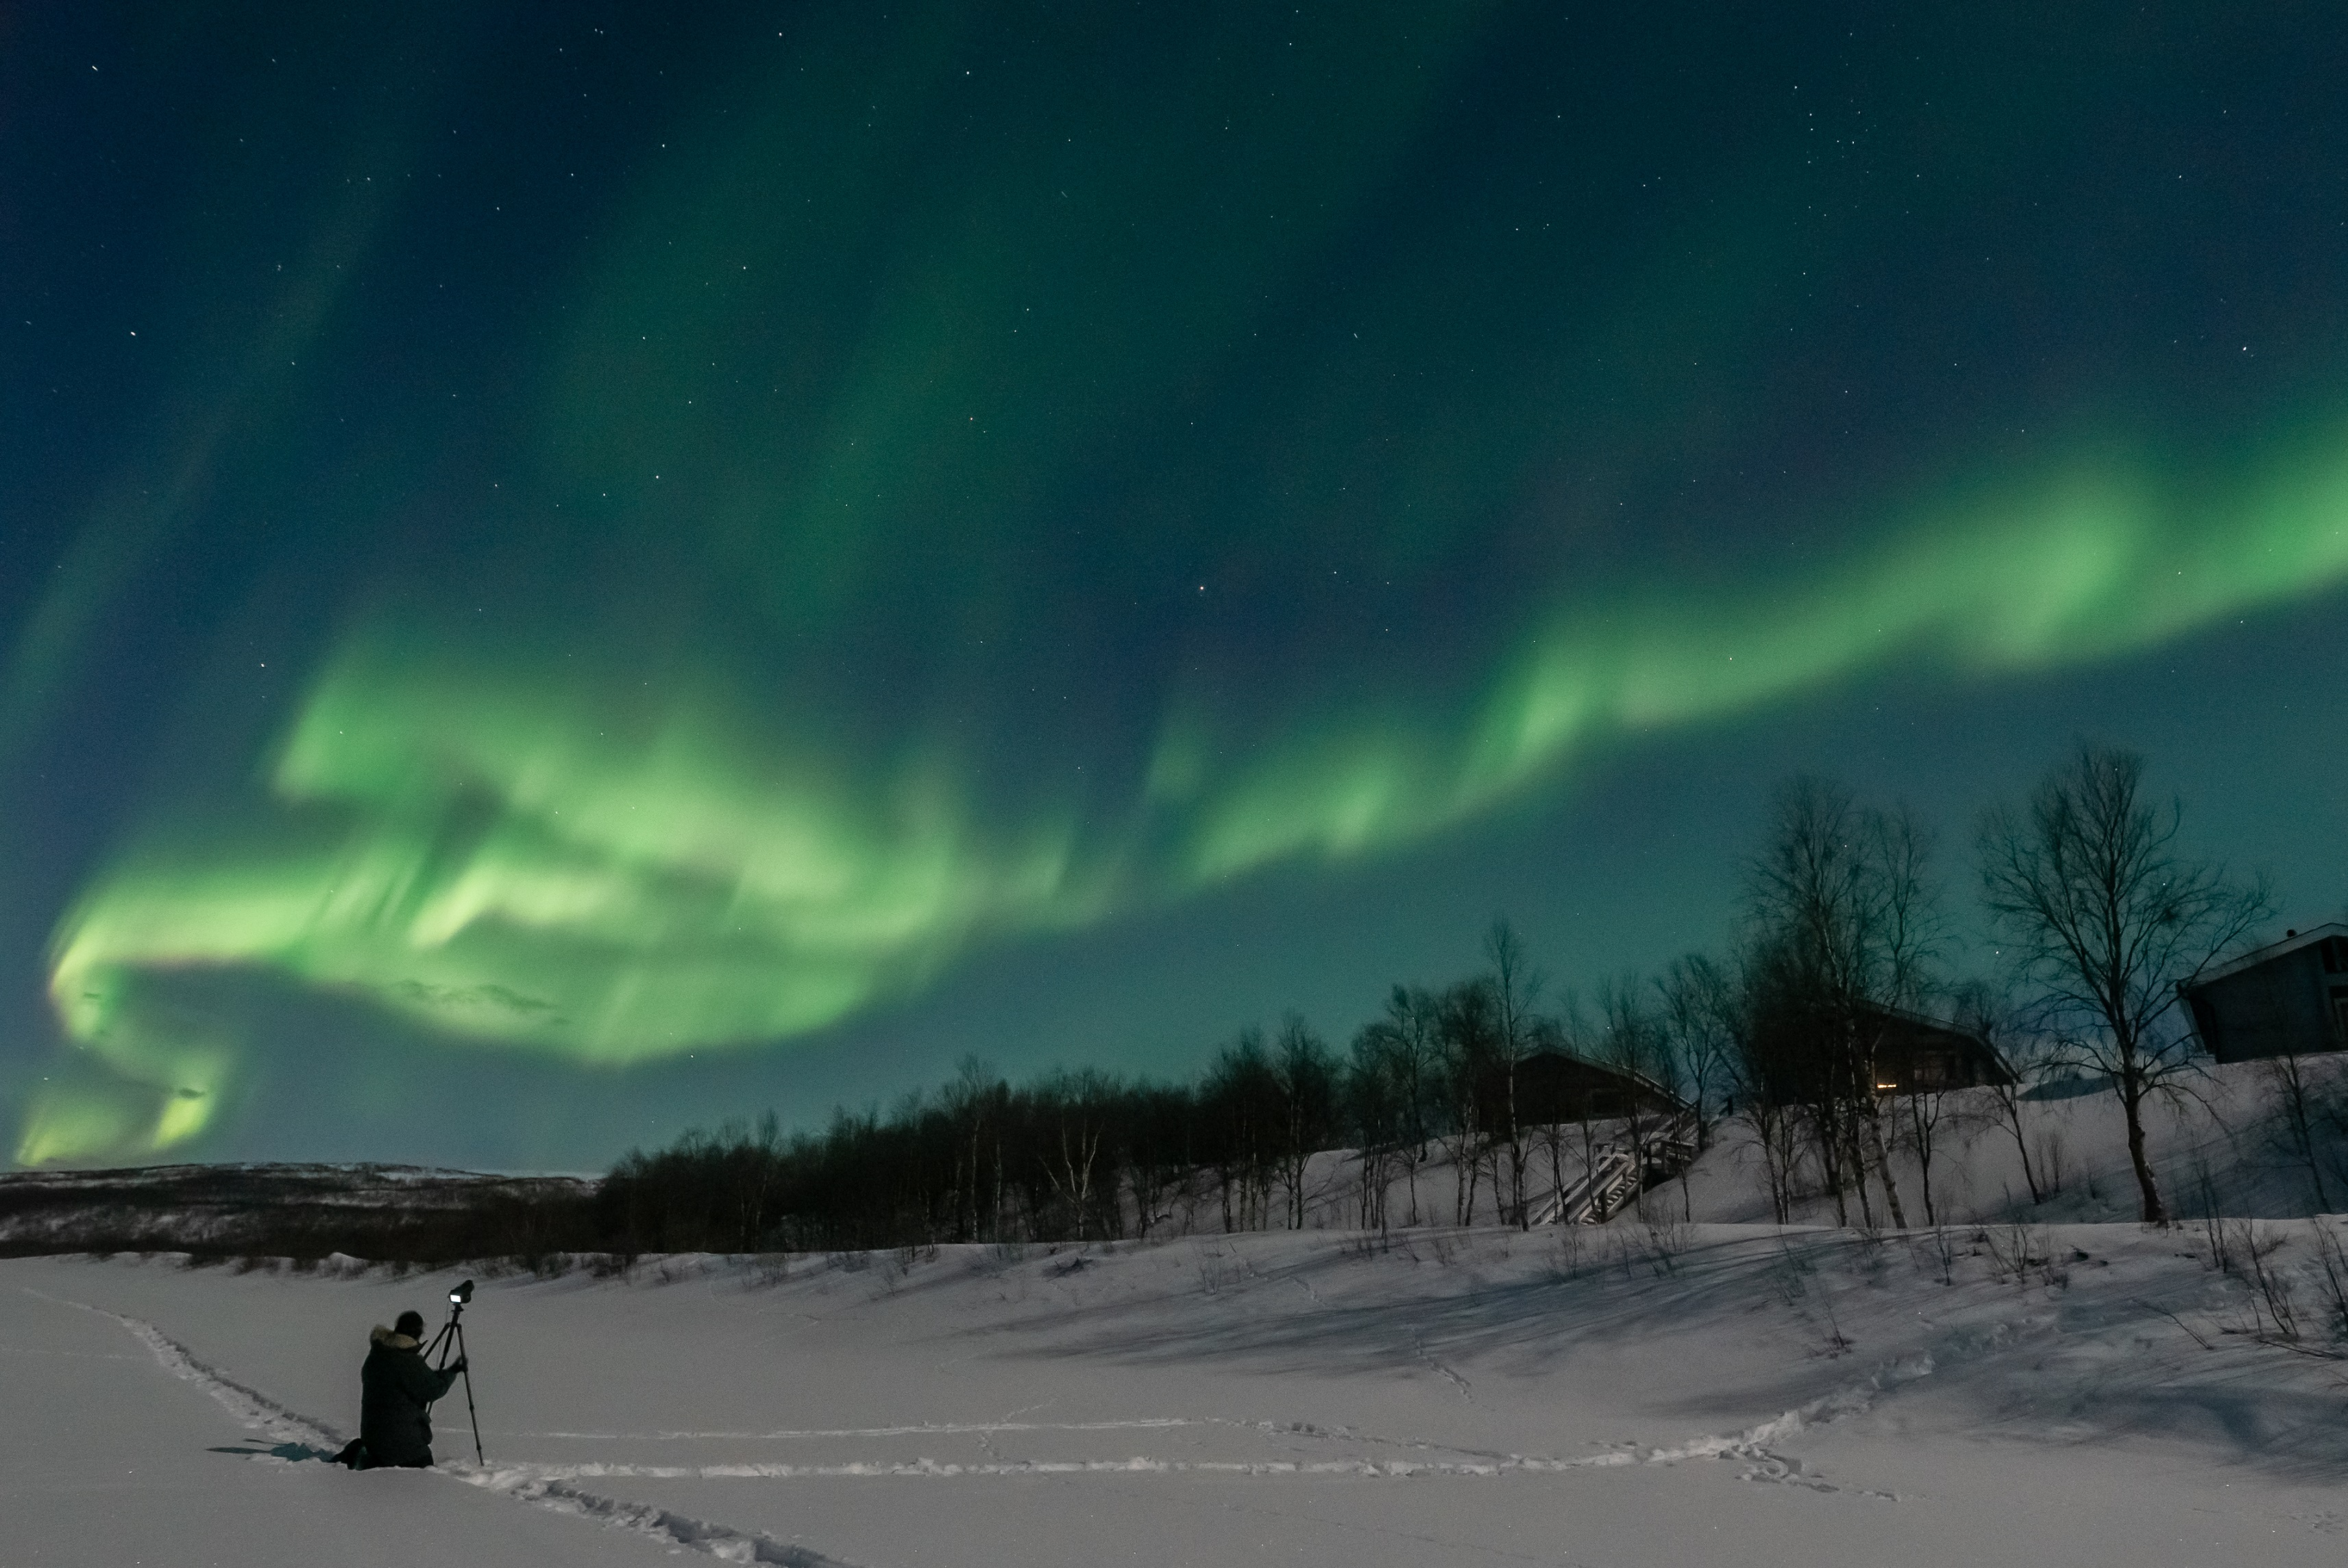 March from the ice of Teno Tiina Salonen - Aurora Holidays